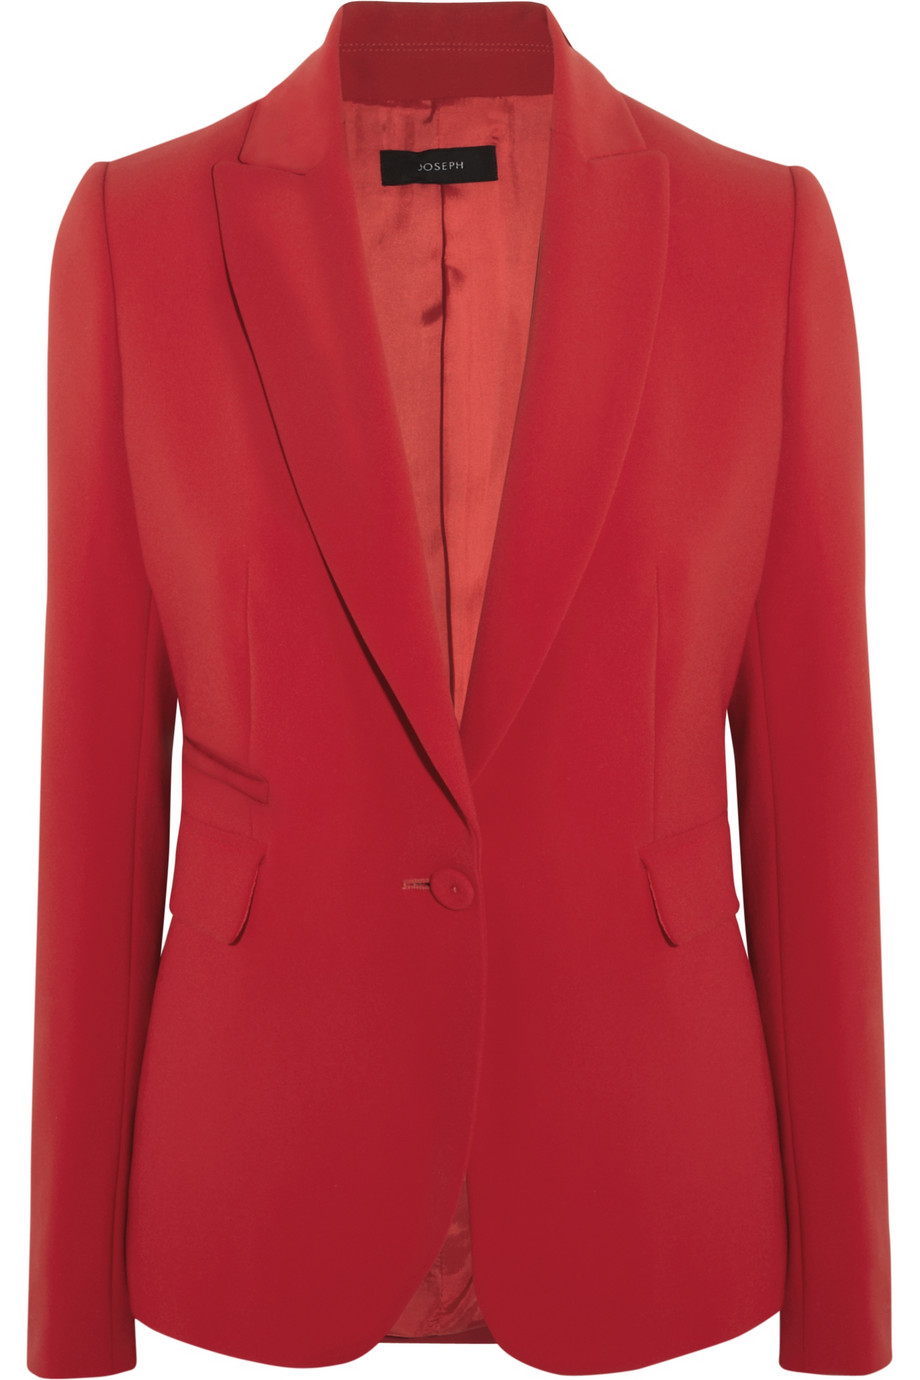 Earl crepe blazer | Joseph | 60% off | THE OUTNET